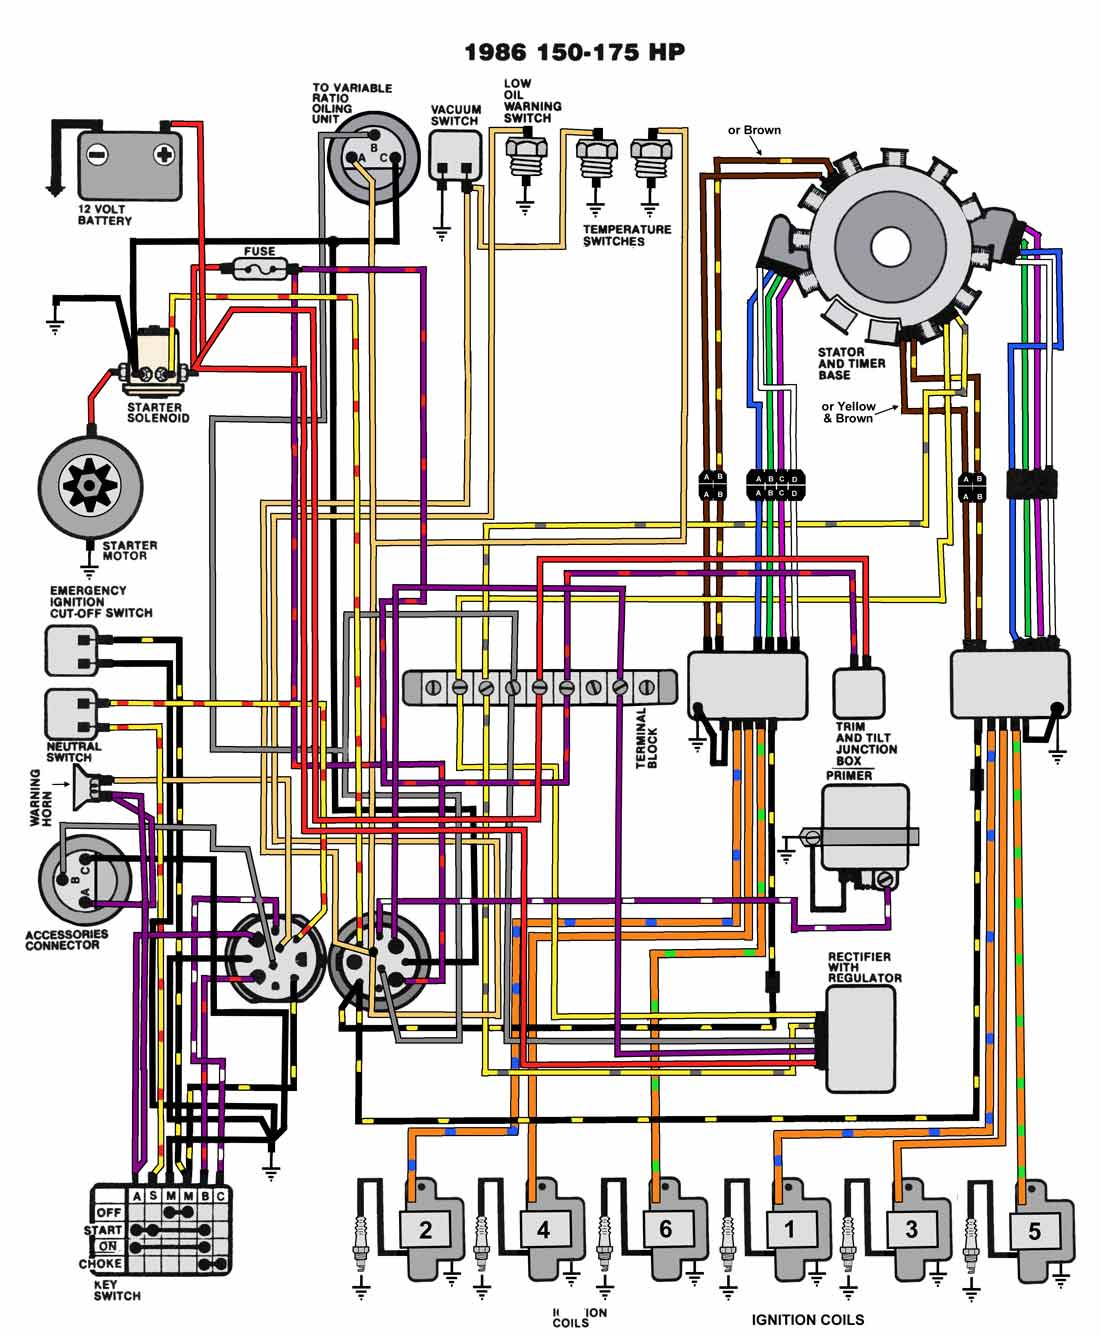 1986_150_175 mastertech marine evinrude johnson outboard wiring diagrams evinrude key switch wiring diagram at reclaimingppi.co